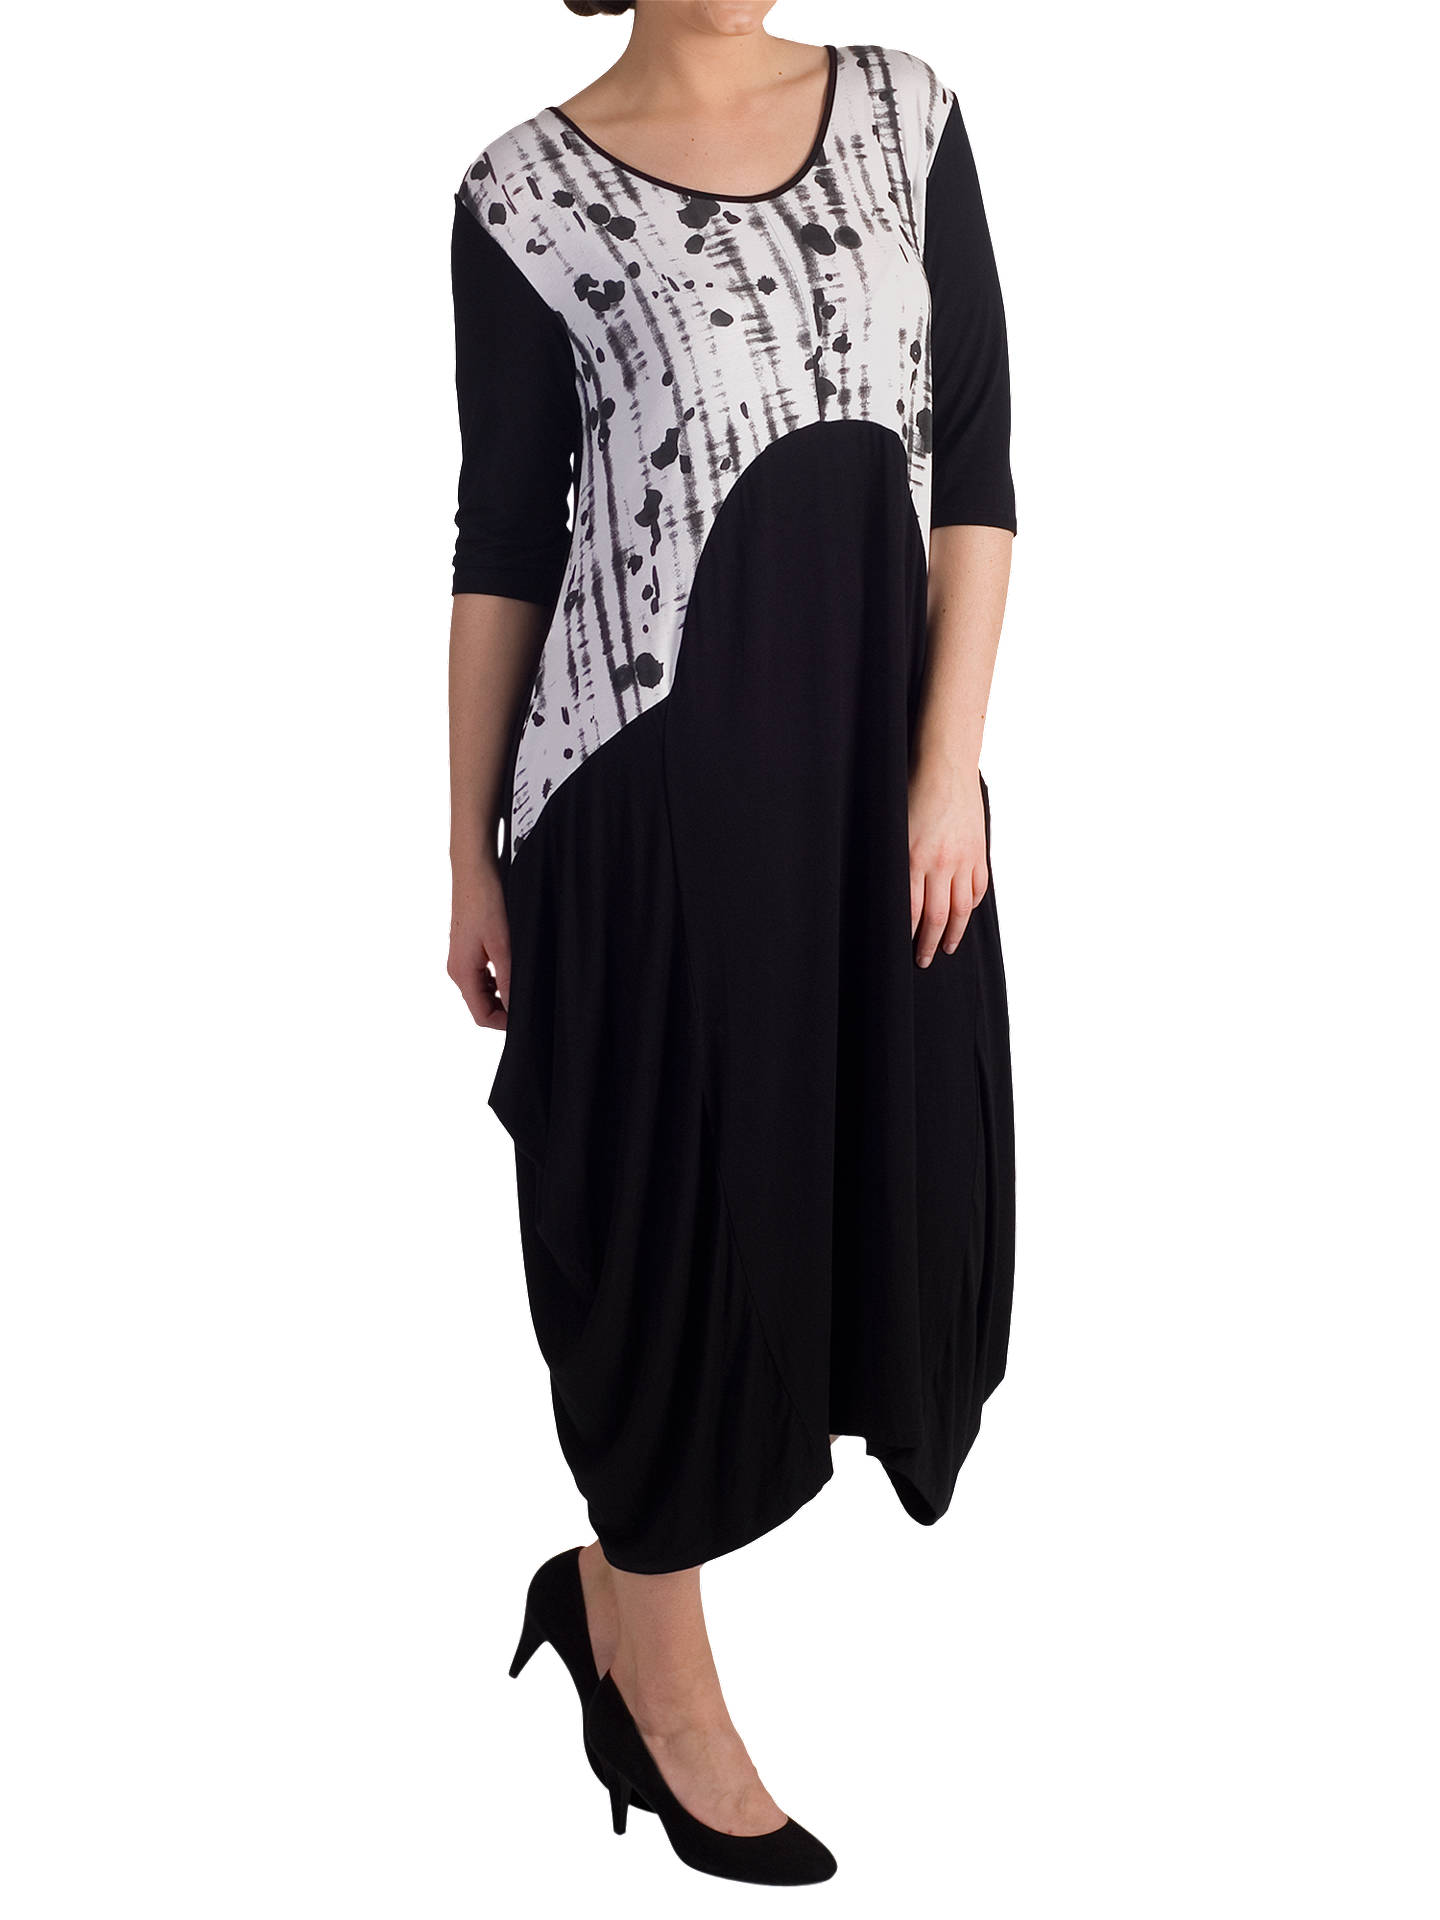 BuyChesca Printed Trim Jersey Dress, Black, 12-14 Online at johnlewis.com